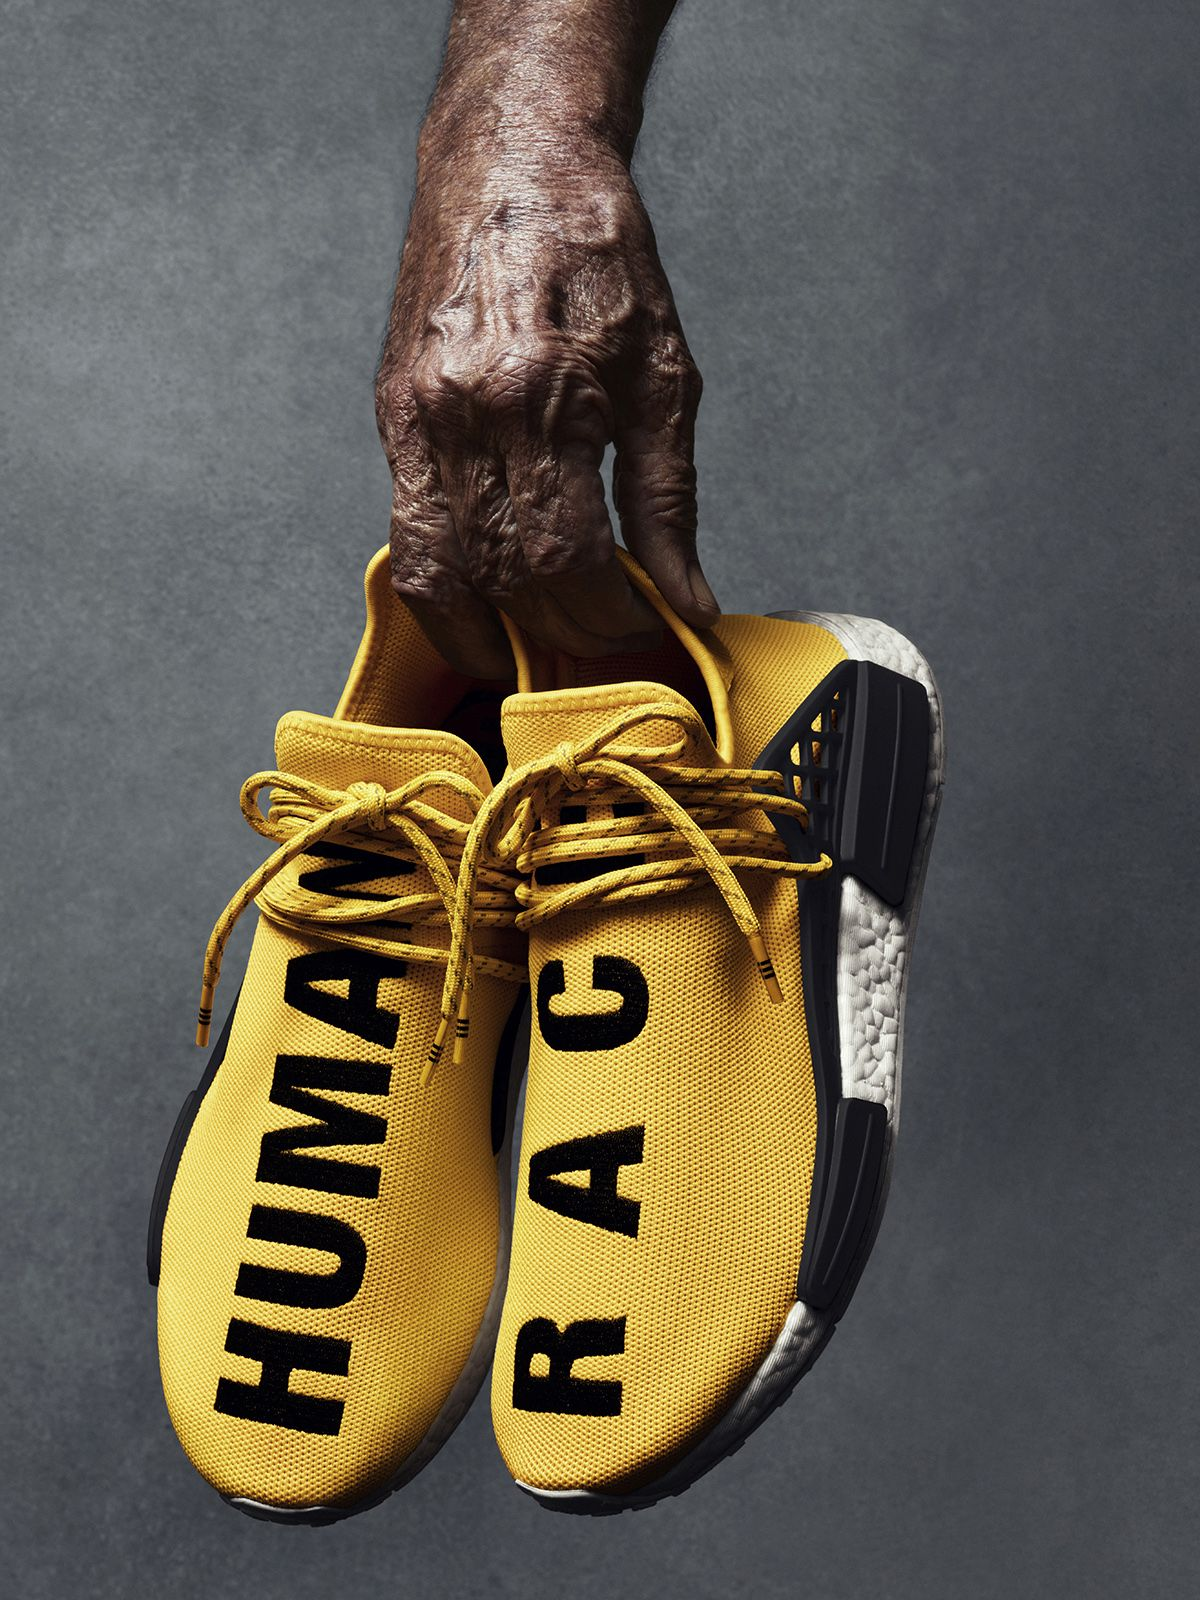 f0be8d35e7325 Pharrell Williams x adidas NMD Human Race Releases 22.07.16 - EU Kicks   Sneaker Magazine